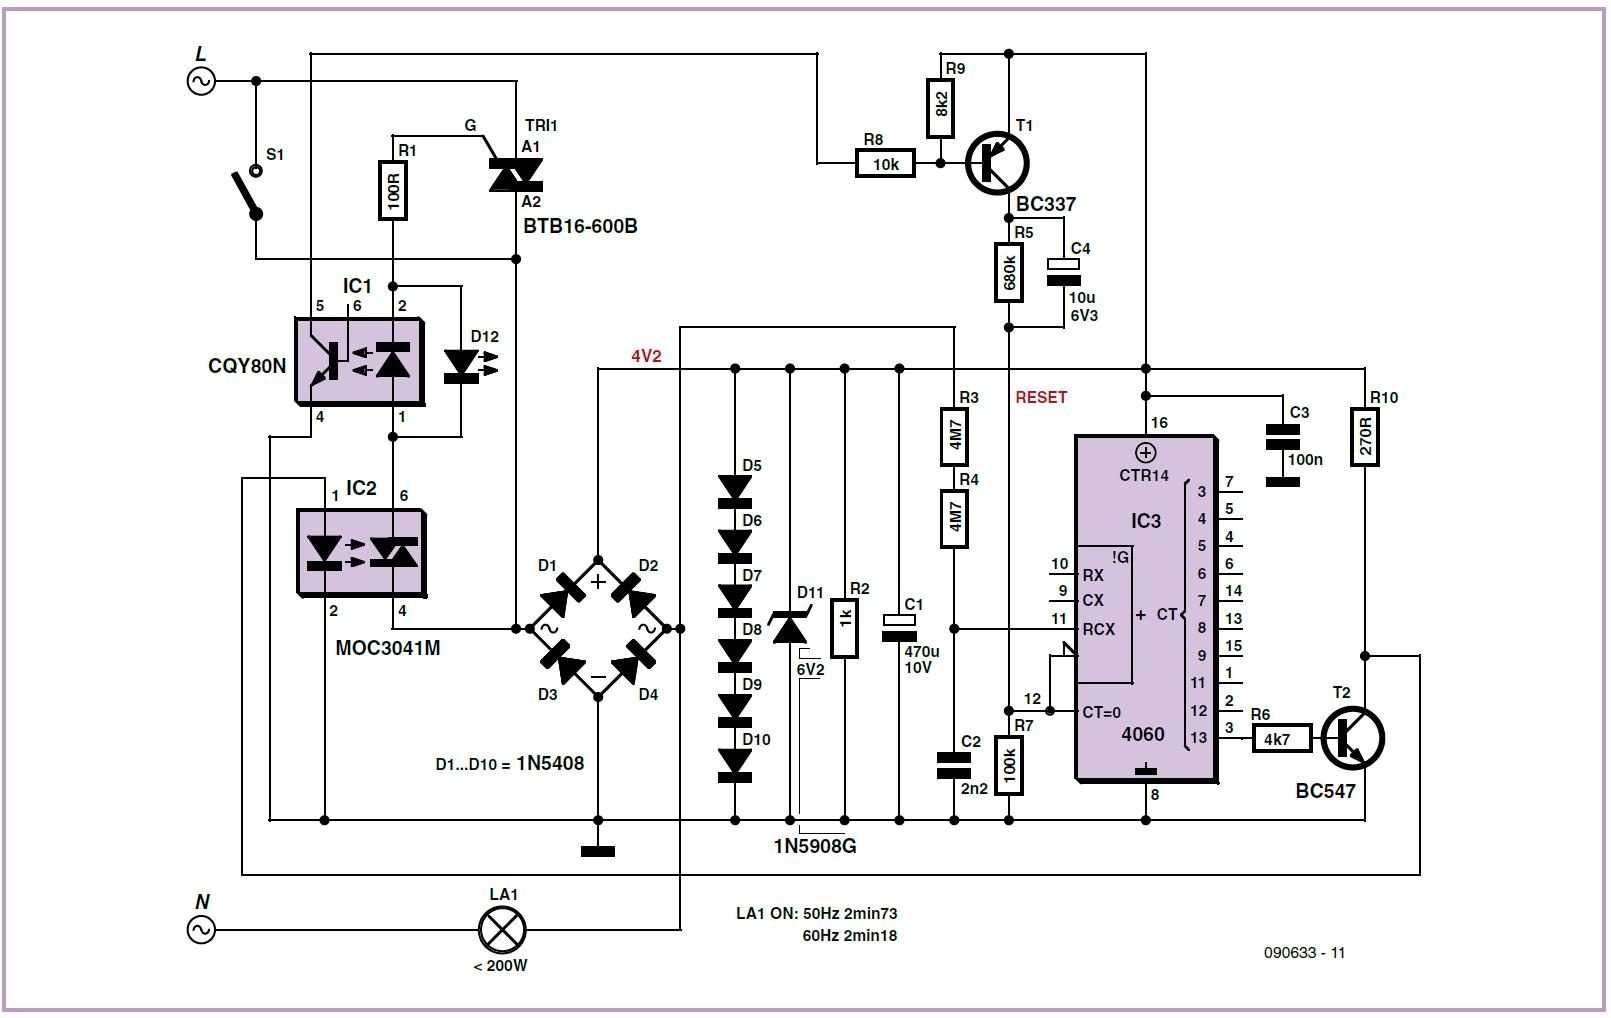 Outdoor Lighting Controller Schematic Circuit Diagram